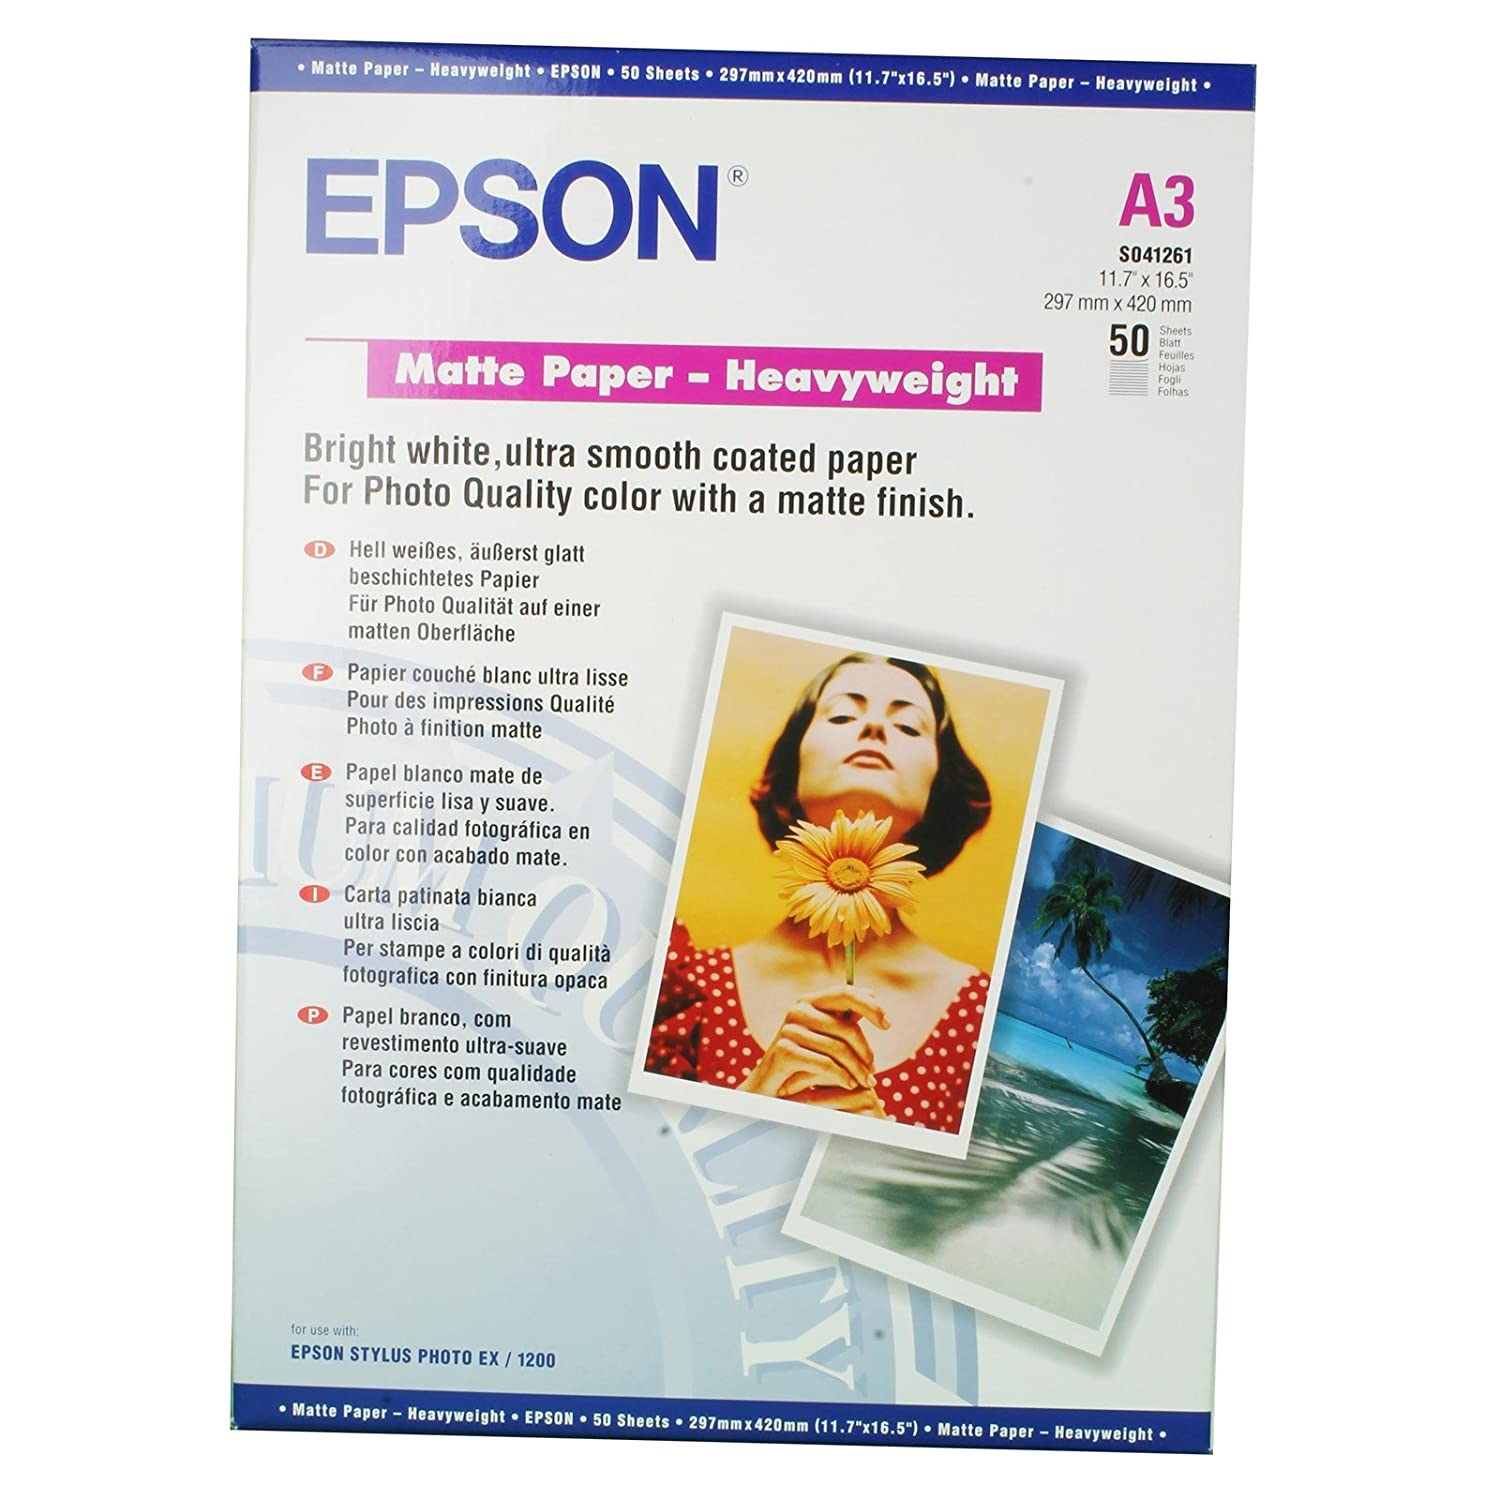 Epson Supplies Paper A3 Matte Heavyweight Amazoncouk Office Products